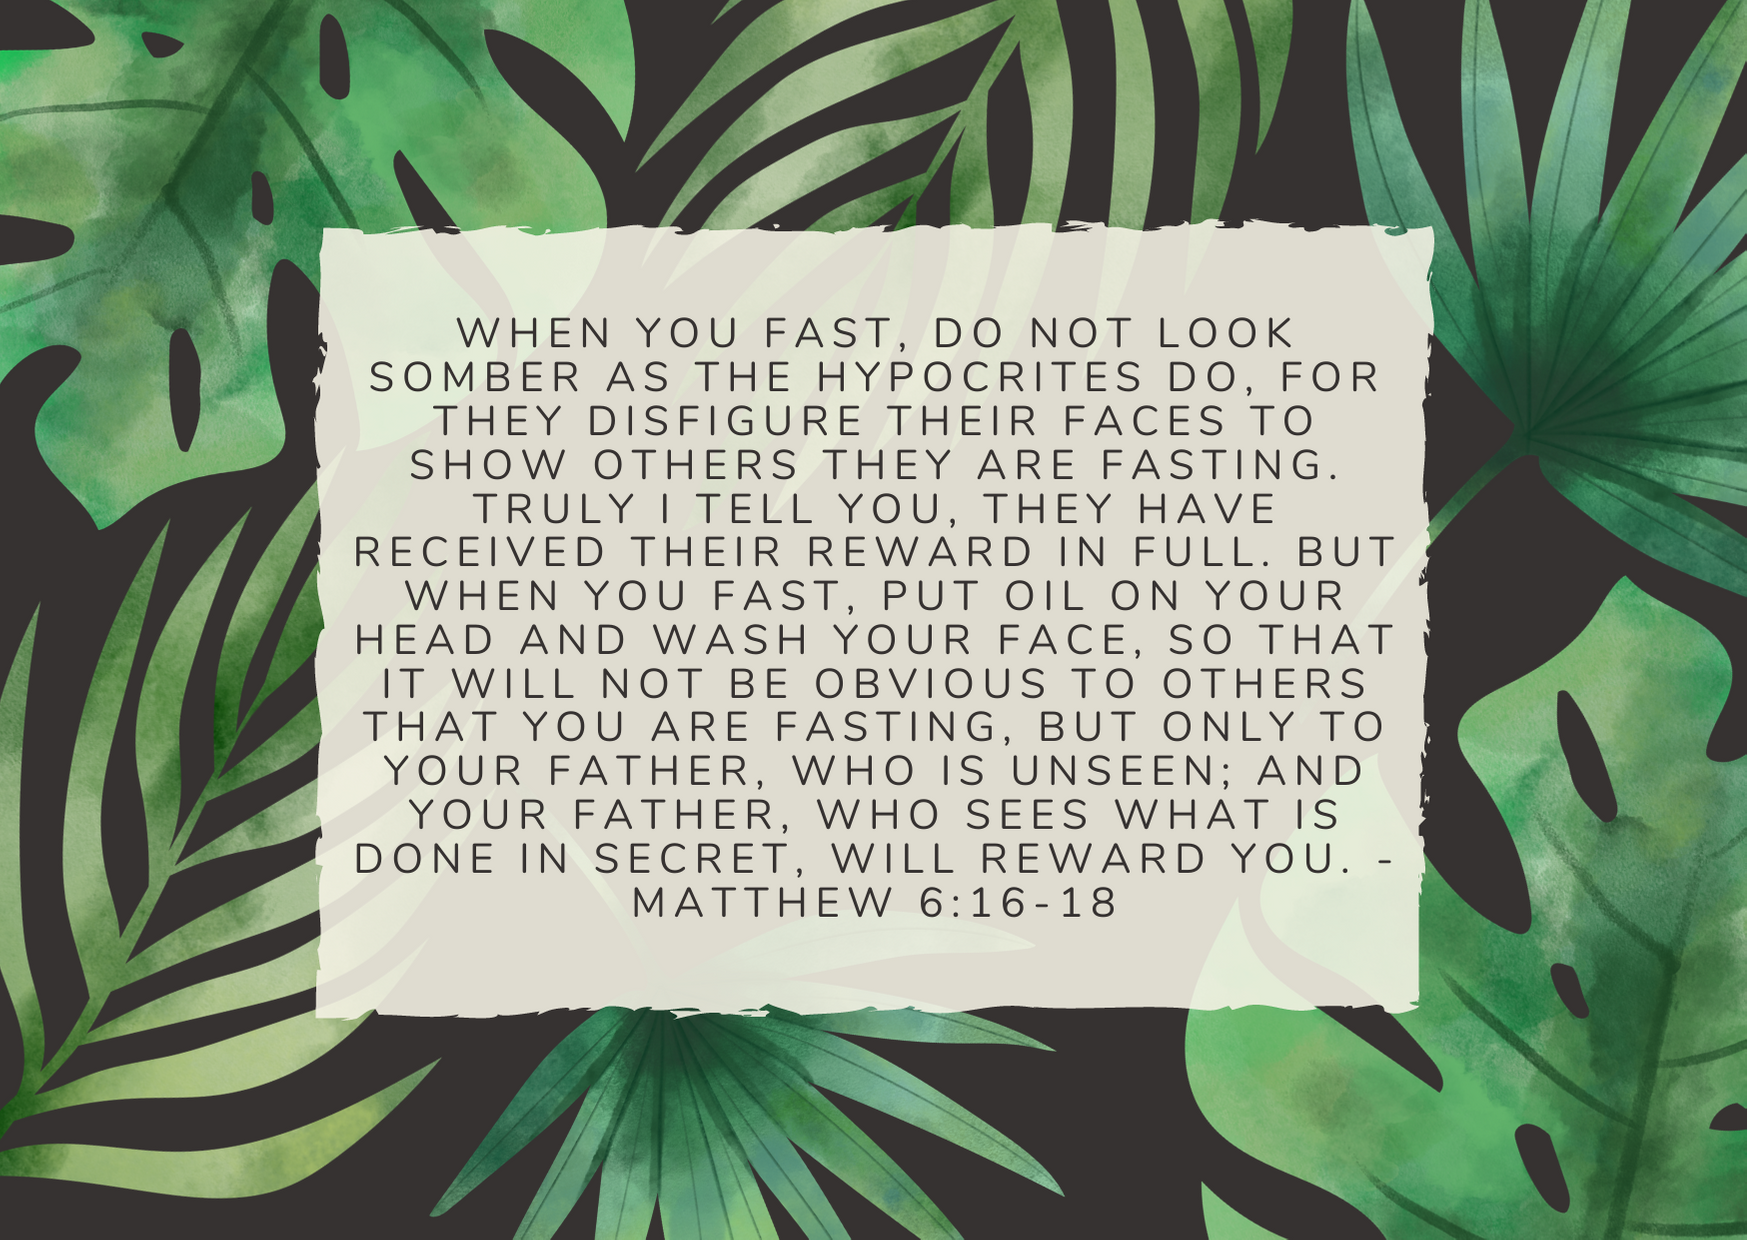 When you fast, do not look somber as the hypocrites do, for they disfigure their faces to show others they are fasting. Truly I tell you, they have received their reward in full. But when you fast, put oil on your head and wash your face, so that it will not be obvious to others that you are fasting, but only to your Father, who is unseen; and your Father, who sees what is done in secret, will reward you. - Matthew 6:16-18